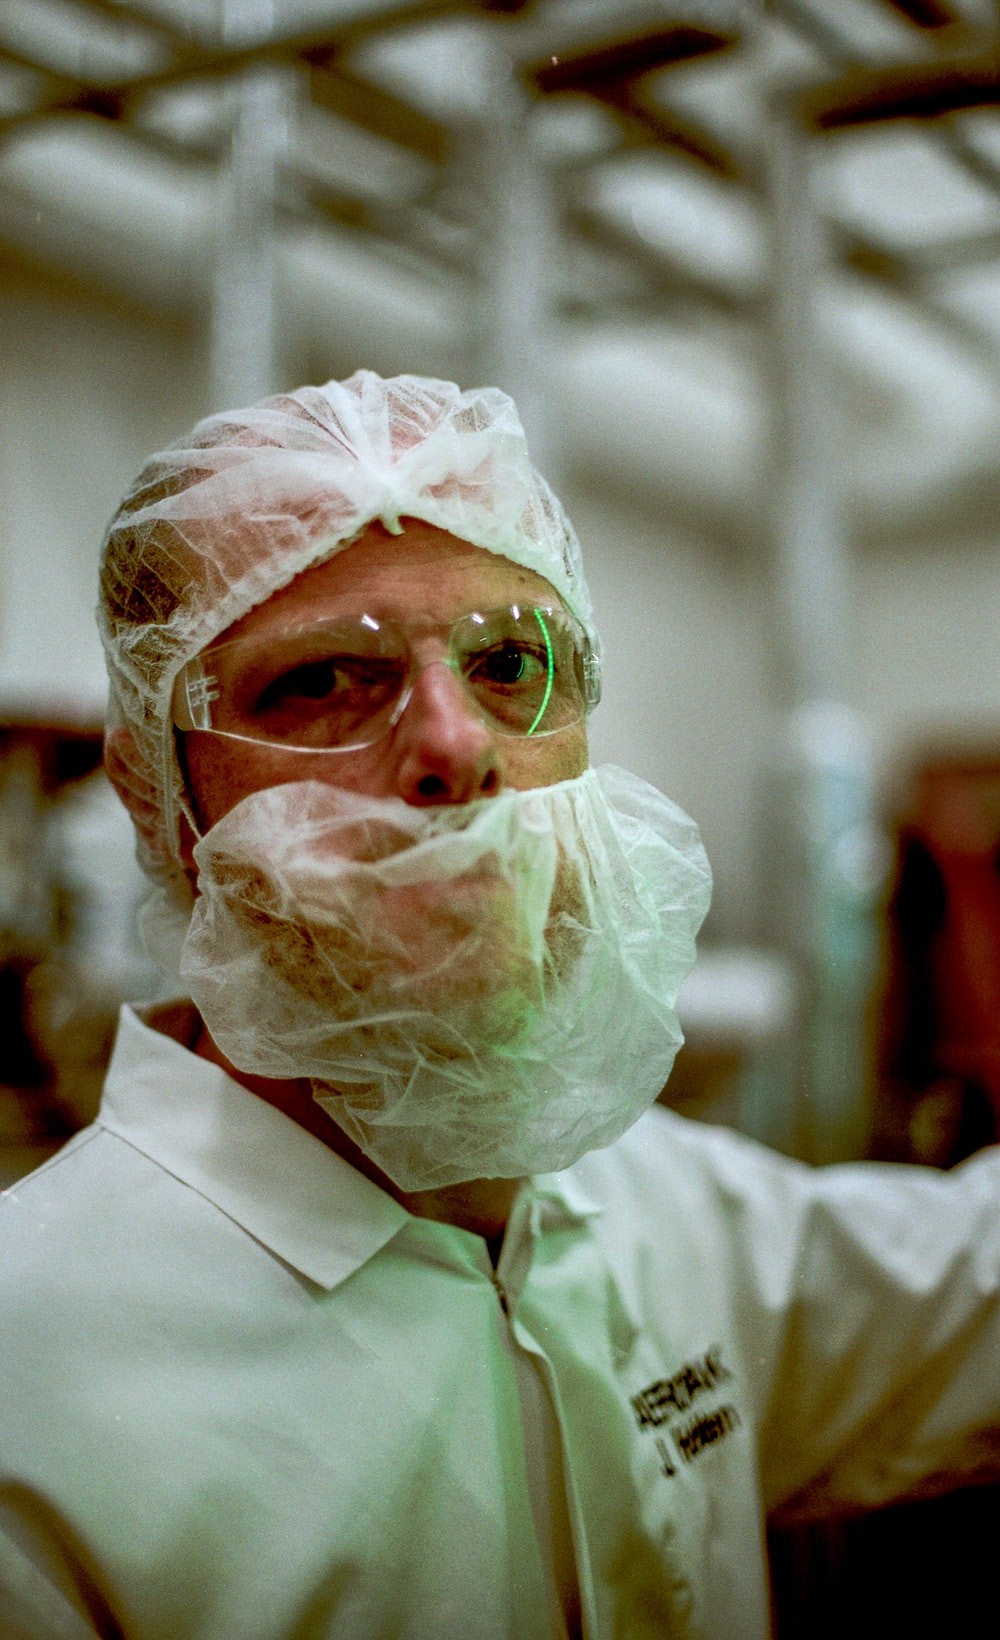 man standing while wearing face mask